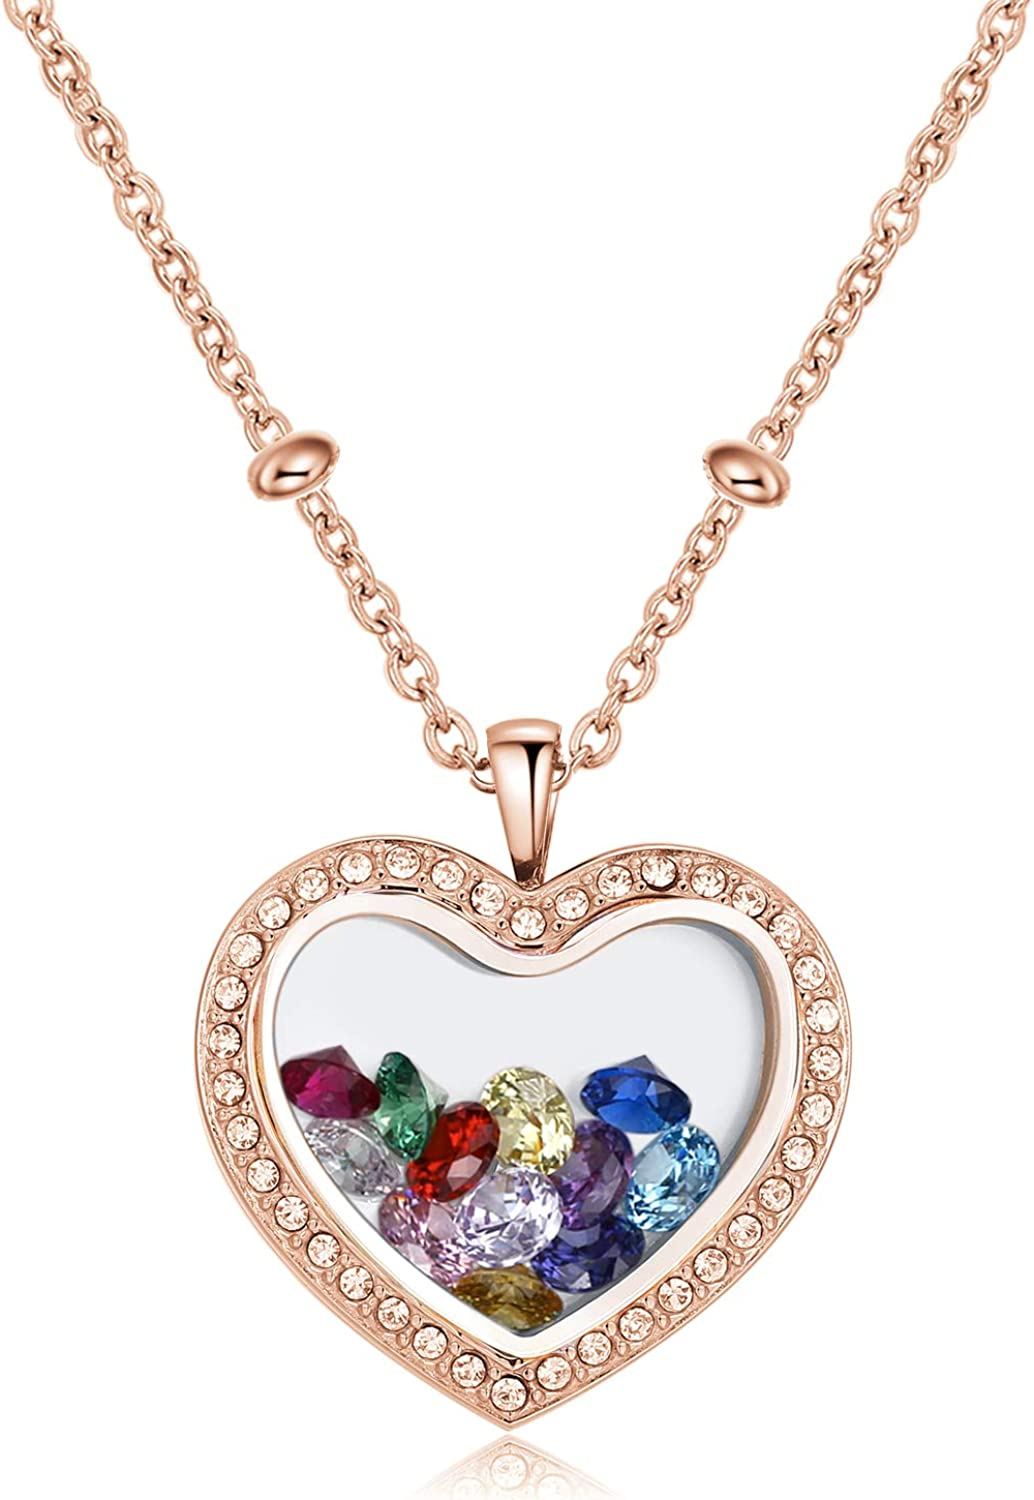 CF100 Birthstone Locket Necklaces, 12 AAAAA+ Cubic Zirconia Birthstones 316L Stainless Steel Floating Charms Locket Necklaces with Chains in Gift Box